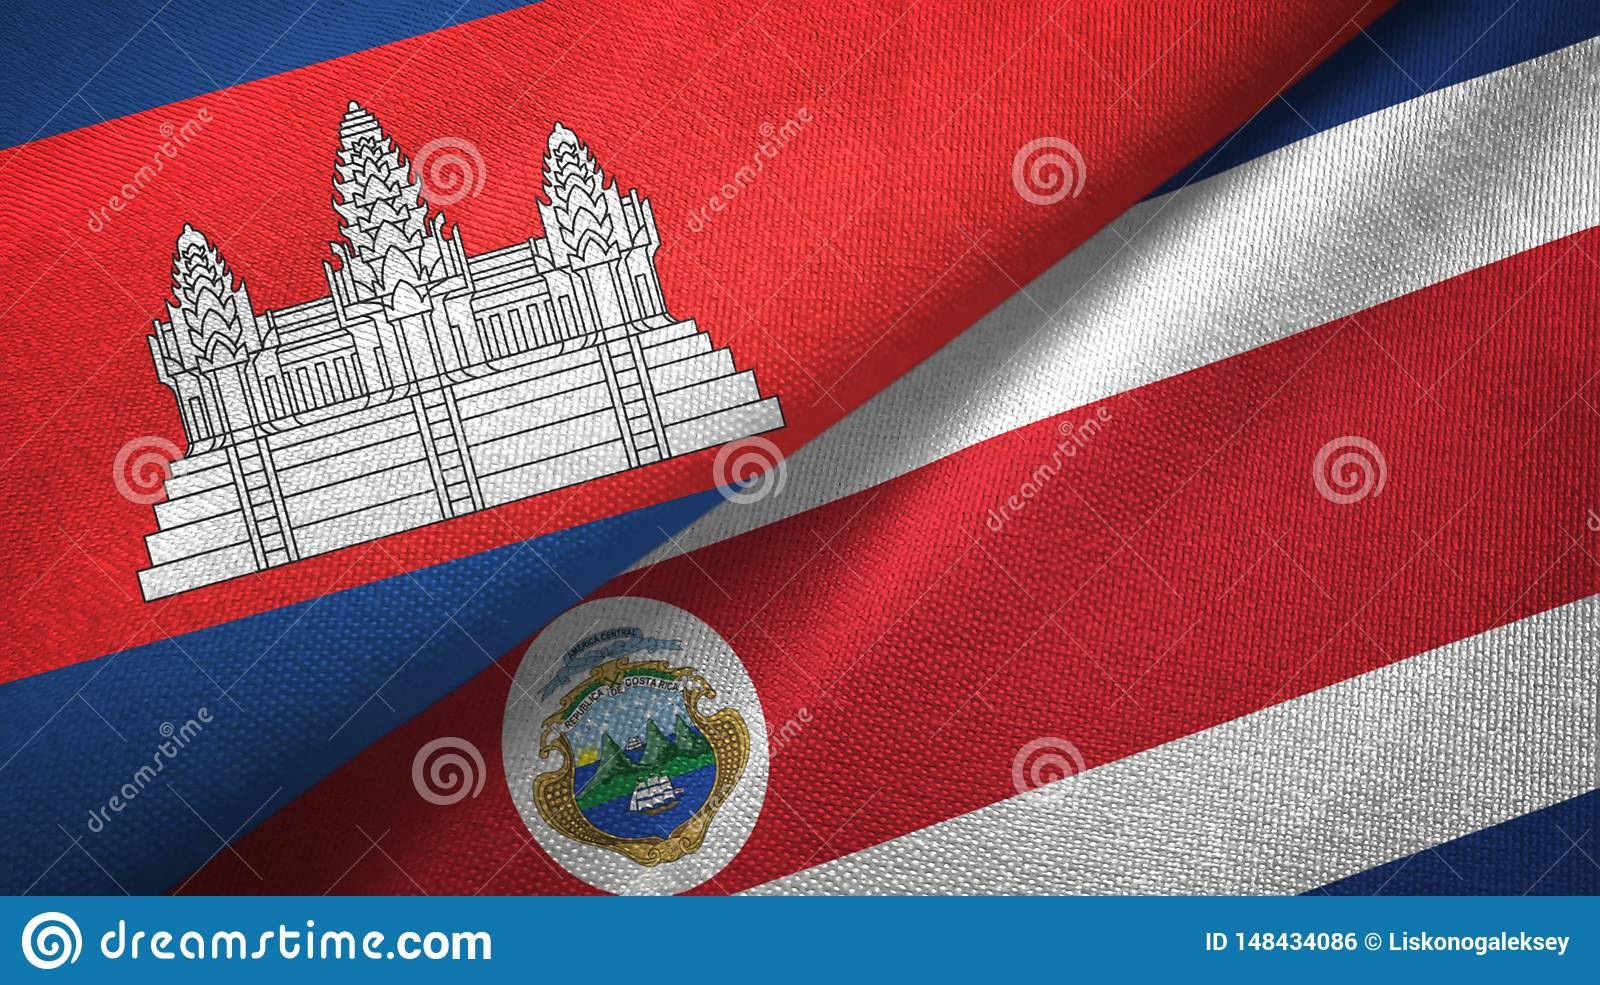 Cambodia and Costa Rica two flags textile cloth, fabric texture